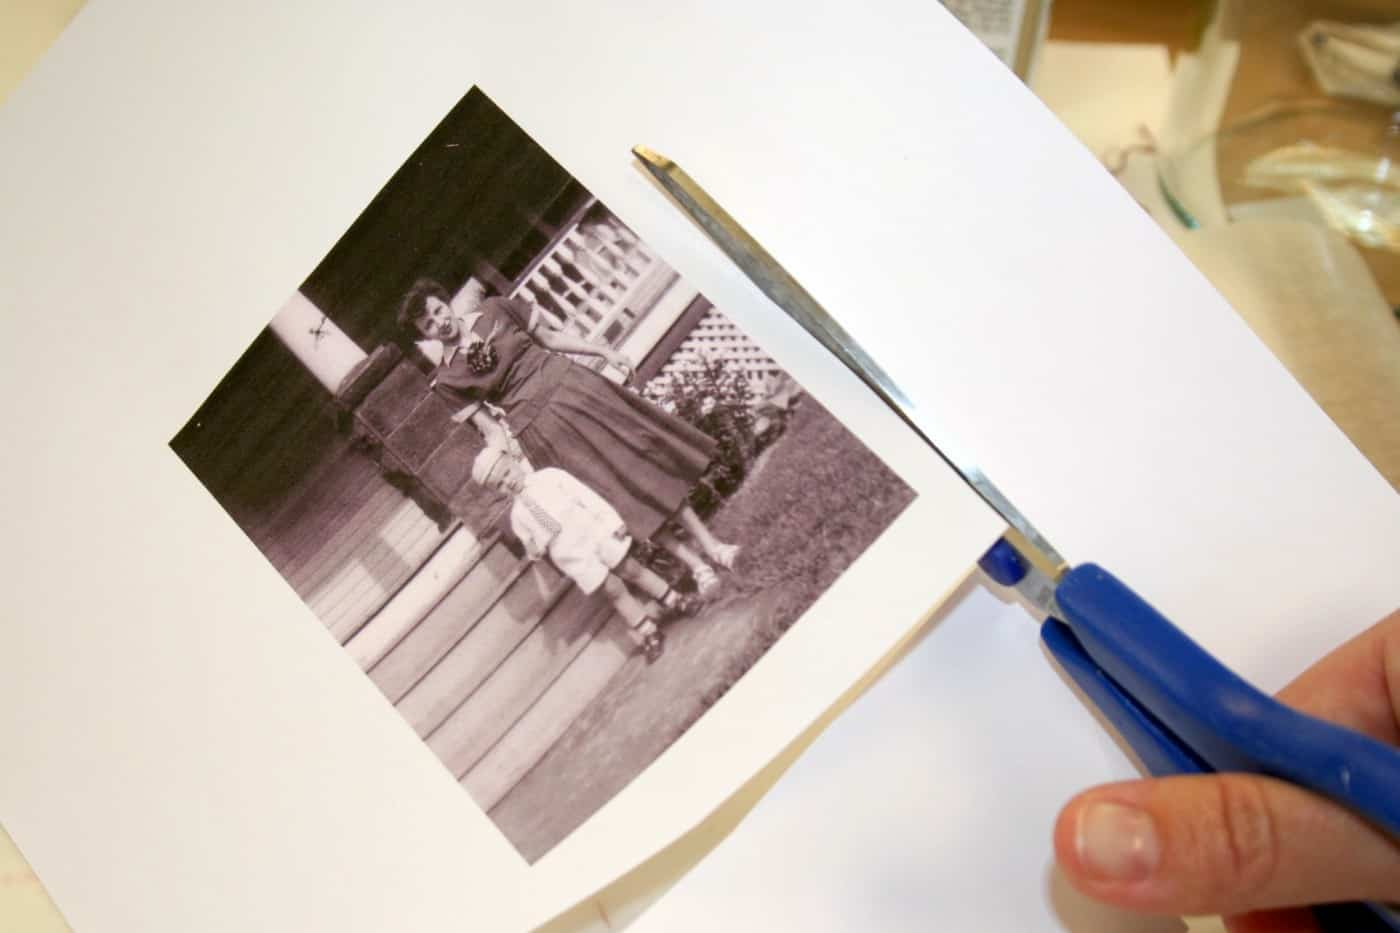 Cutting out a vintage image with blue handled scissors